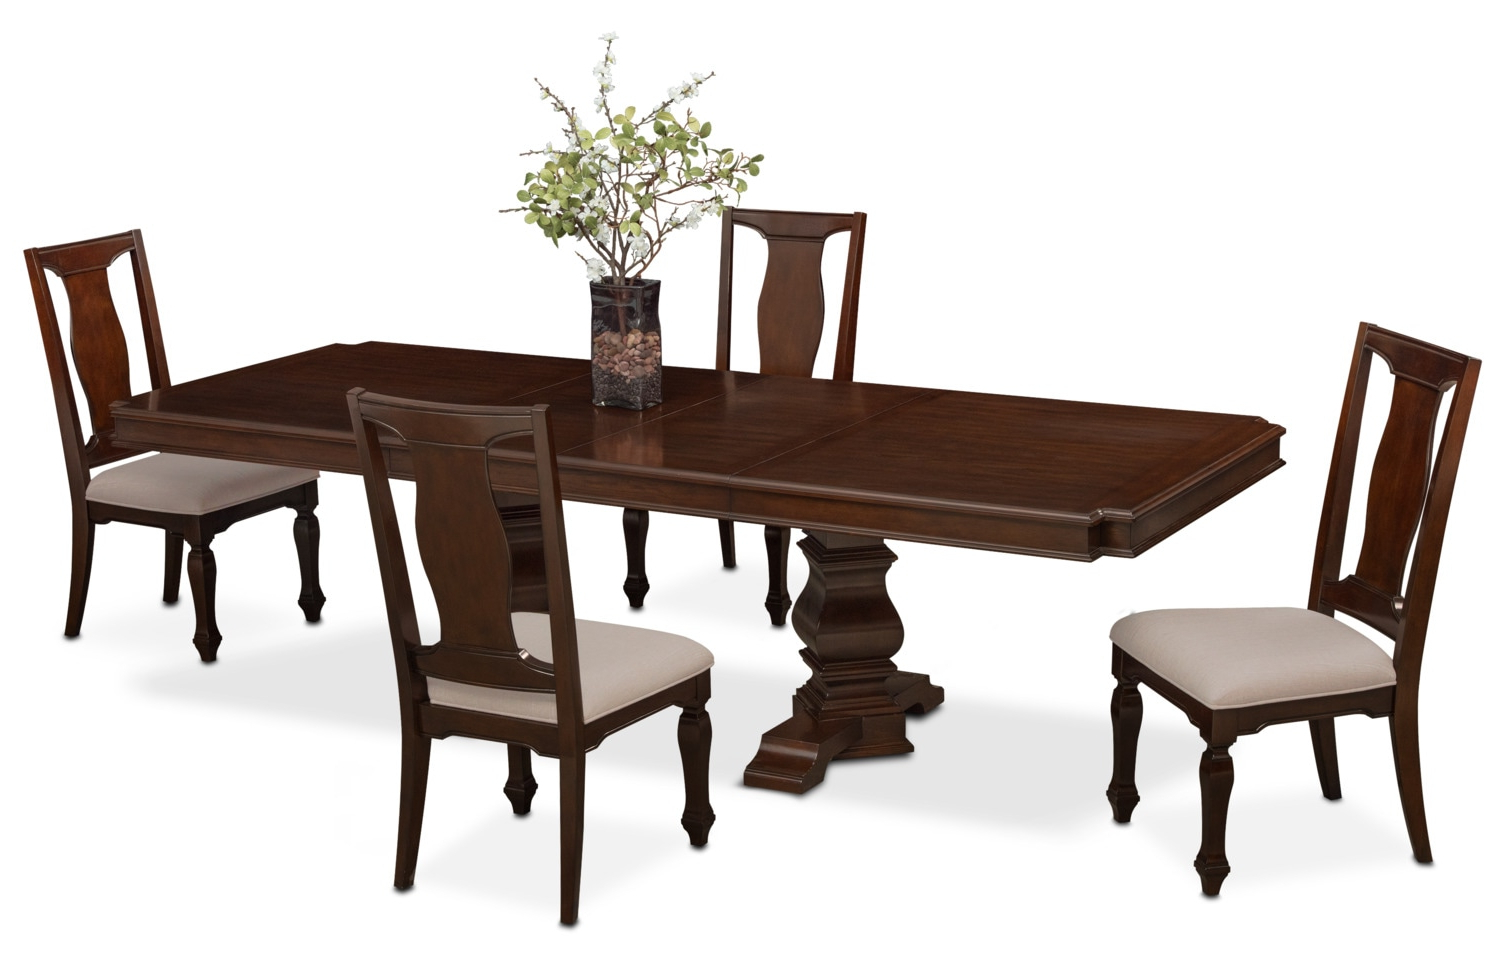 Vienna Rectangular Dining Table And 4 Dining Chairs Pertaining To Well Known Rectangular Dining Tables (View 9 of 25)